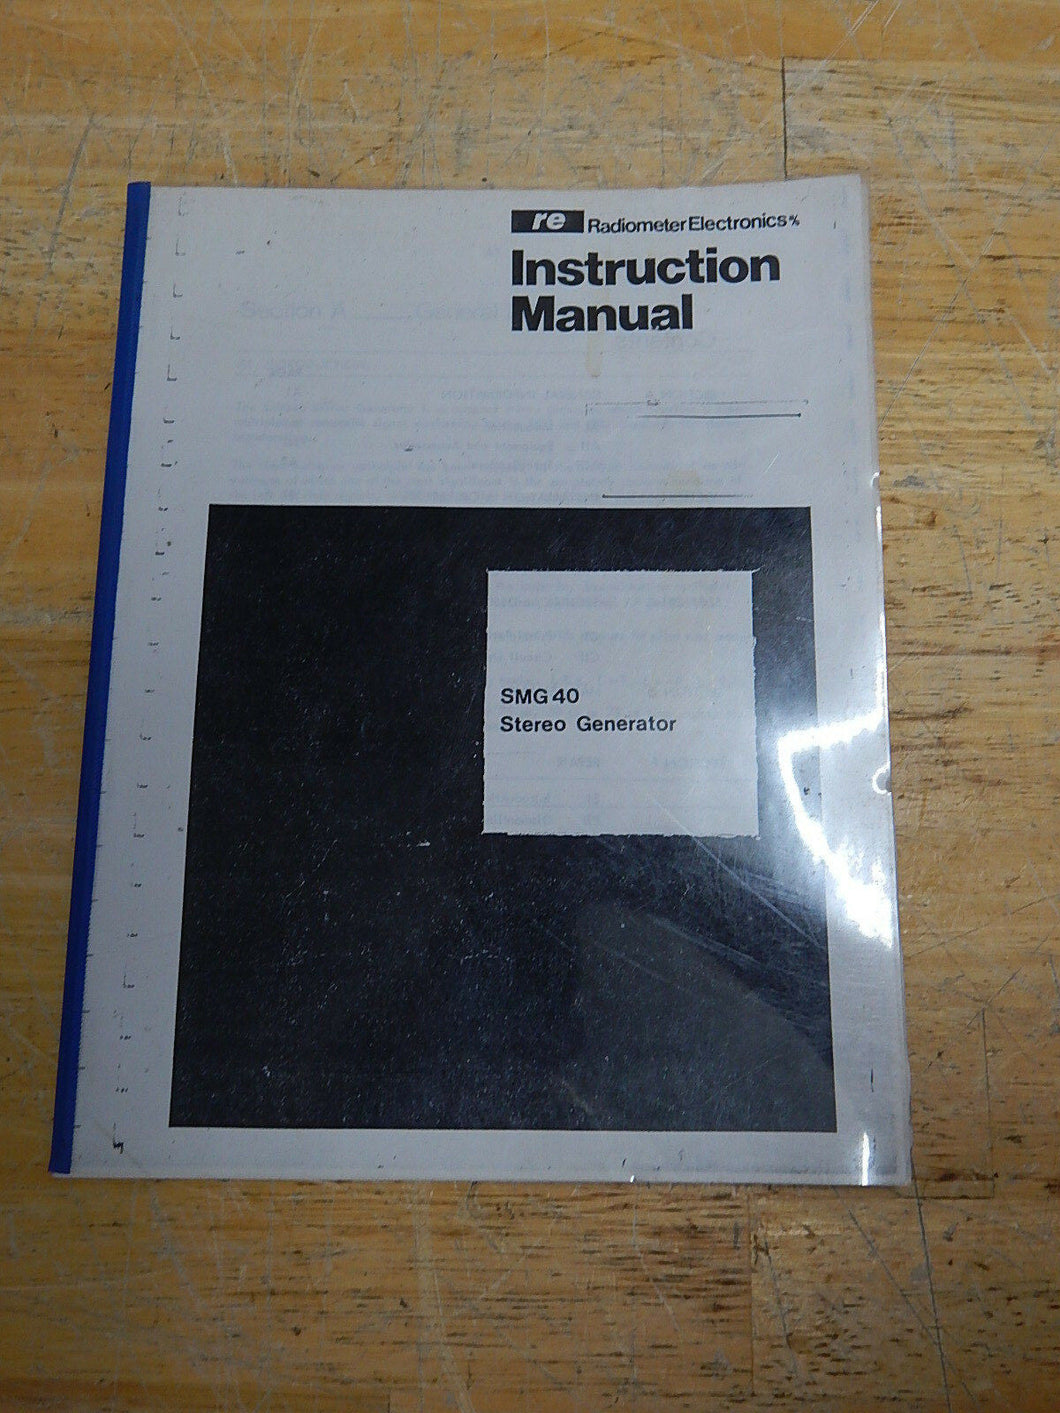 Radiometer Electronics SMG40 Stereo Generator Instruction Manual